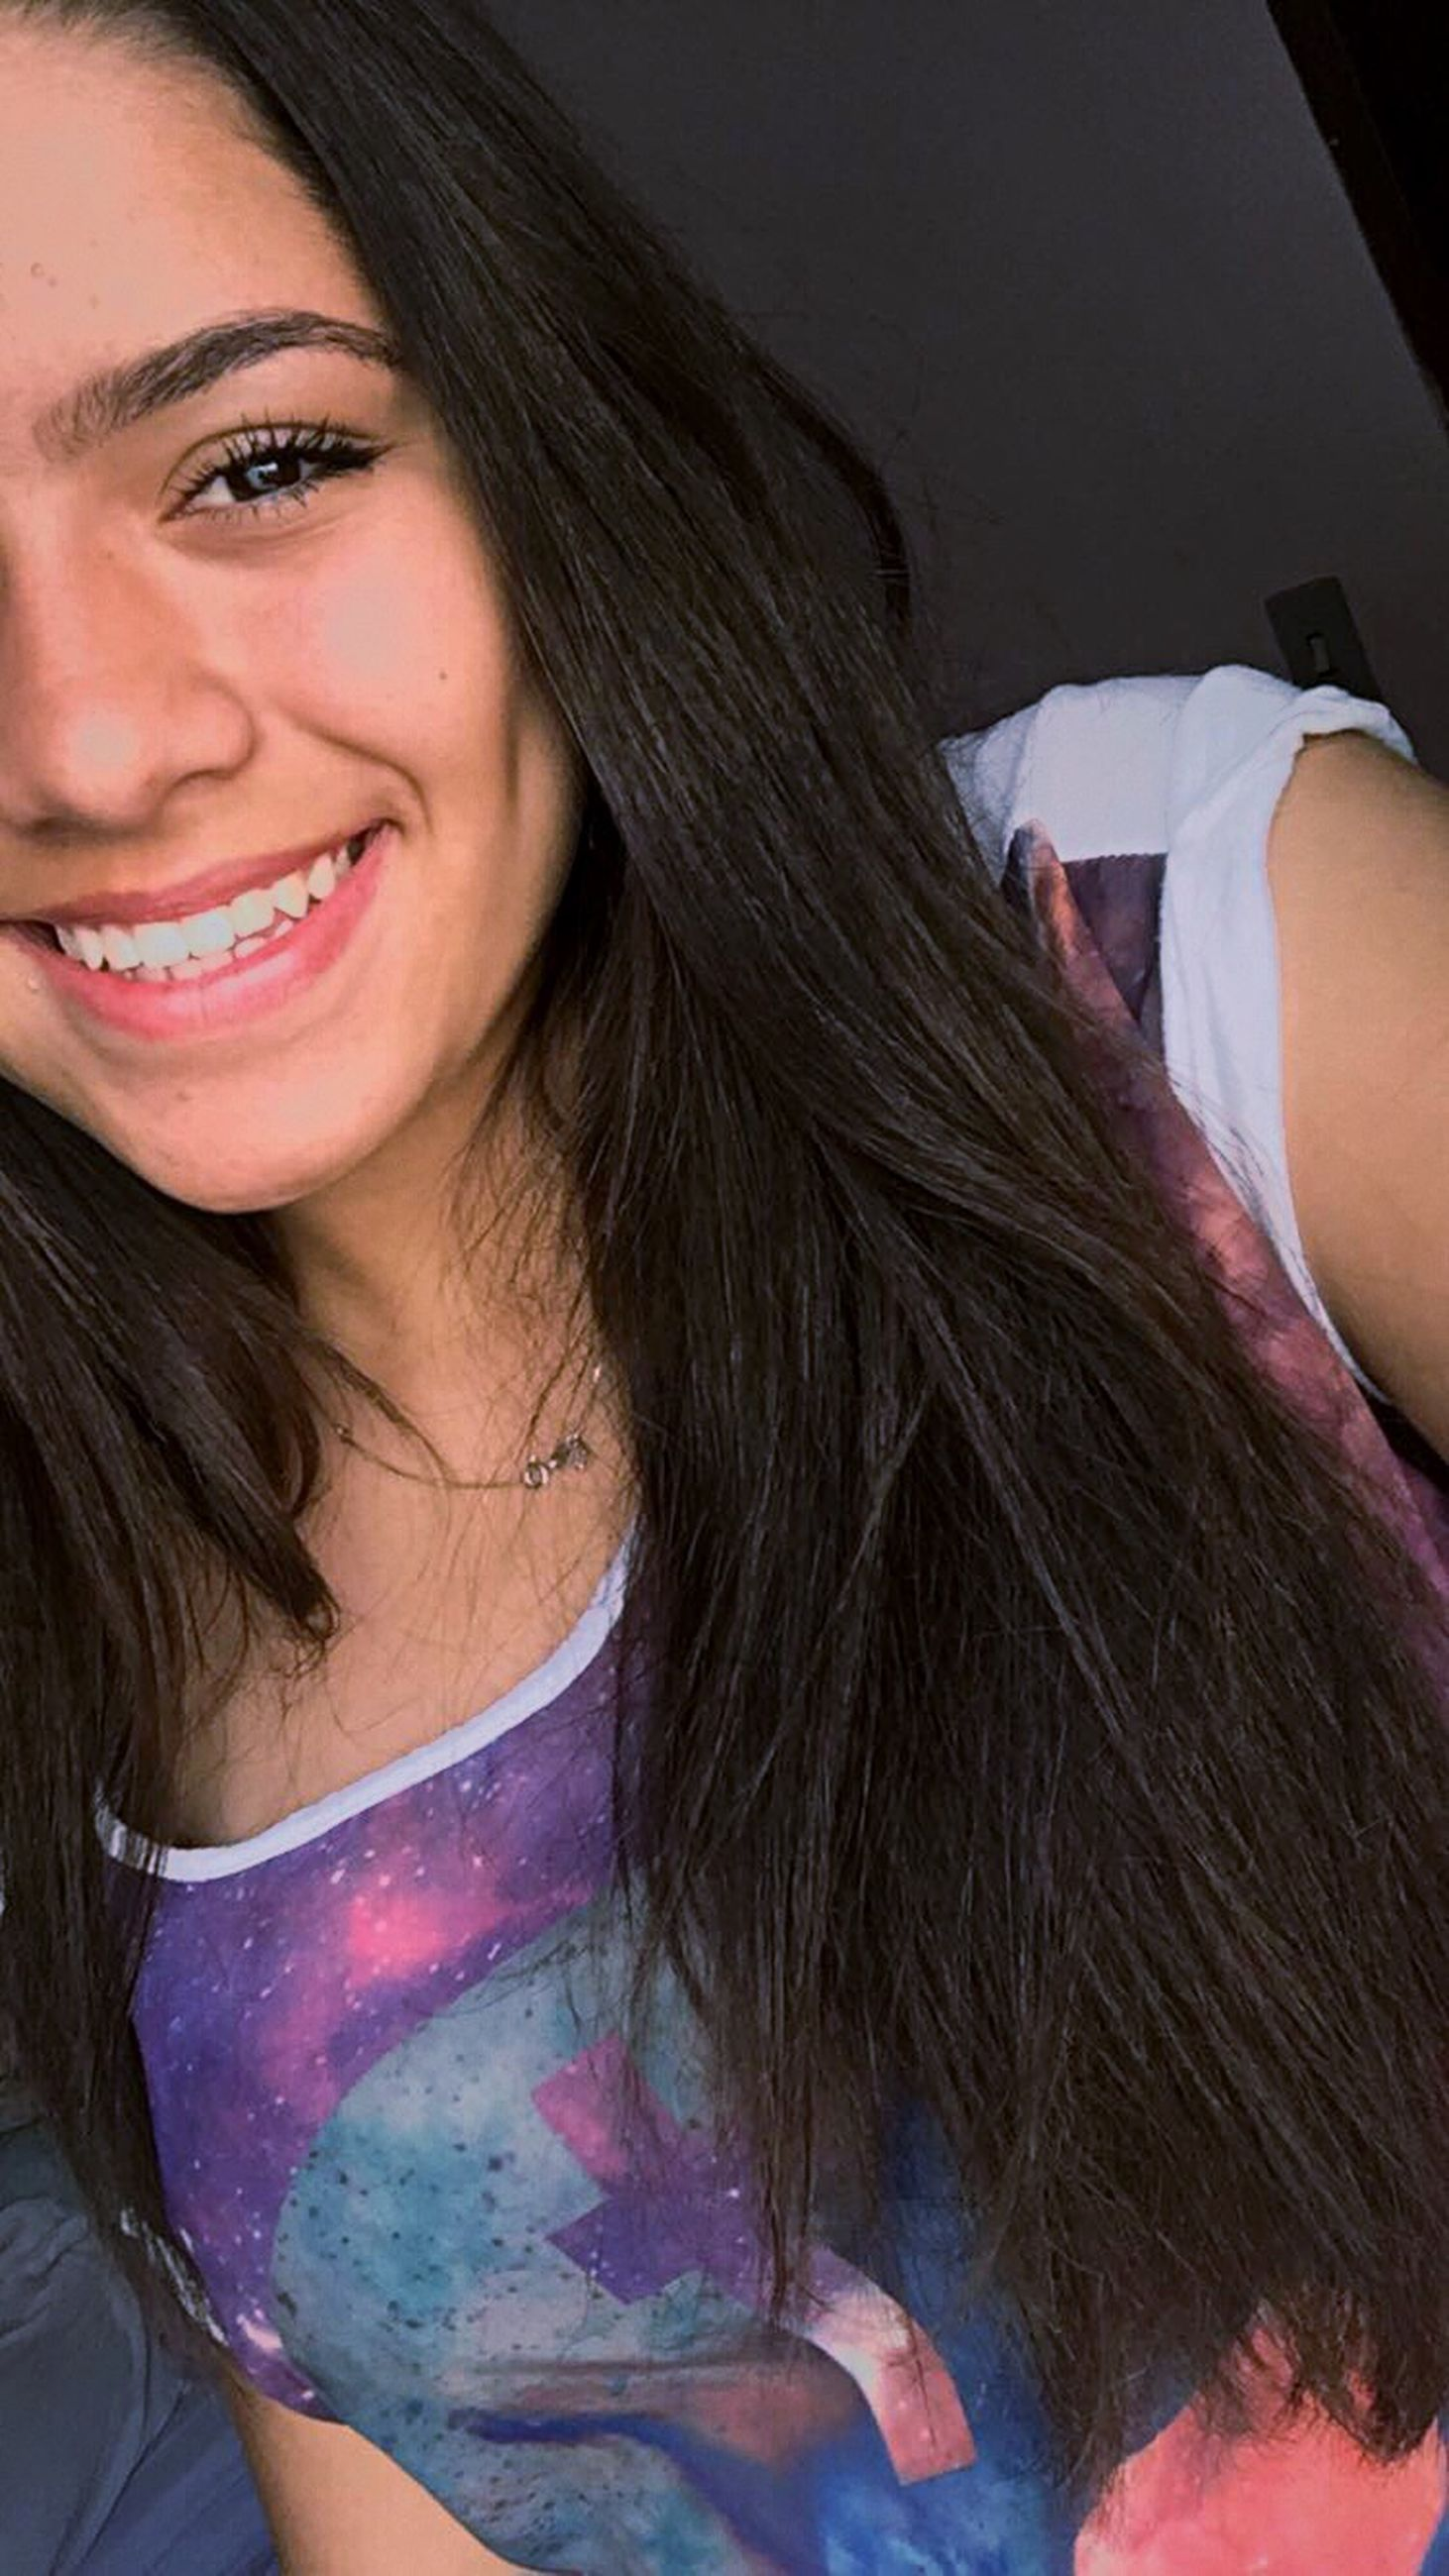 young women, young adult, person, lifestyles, portrait, long hair, headshot, leisure activity, front view, smiling, close-up, black hair, casual clothing, brown hair, beauty, toothy smile, human face, day